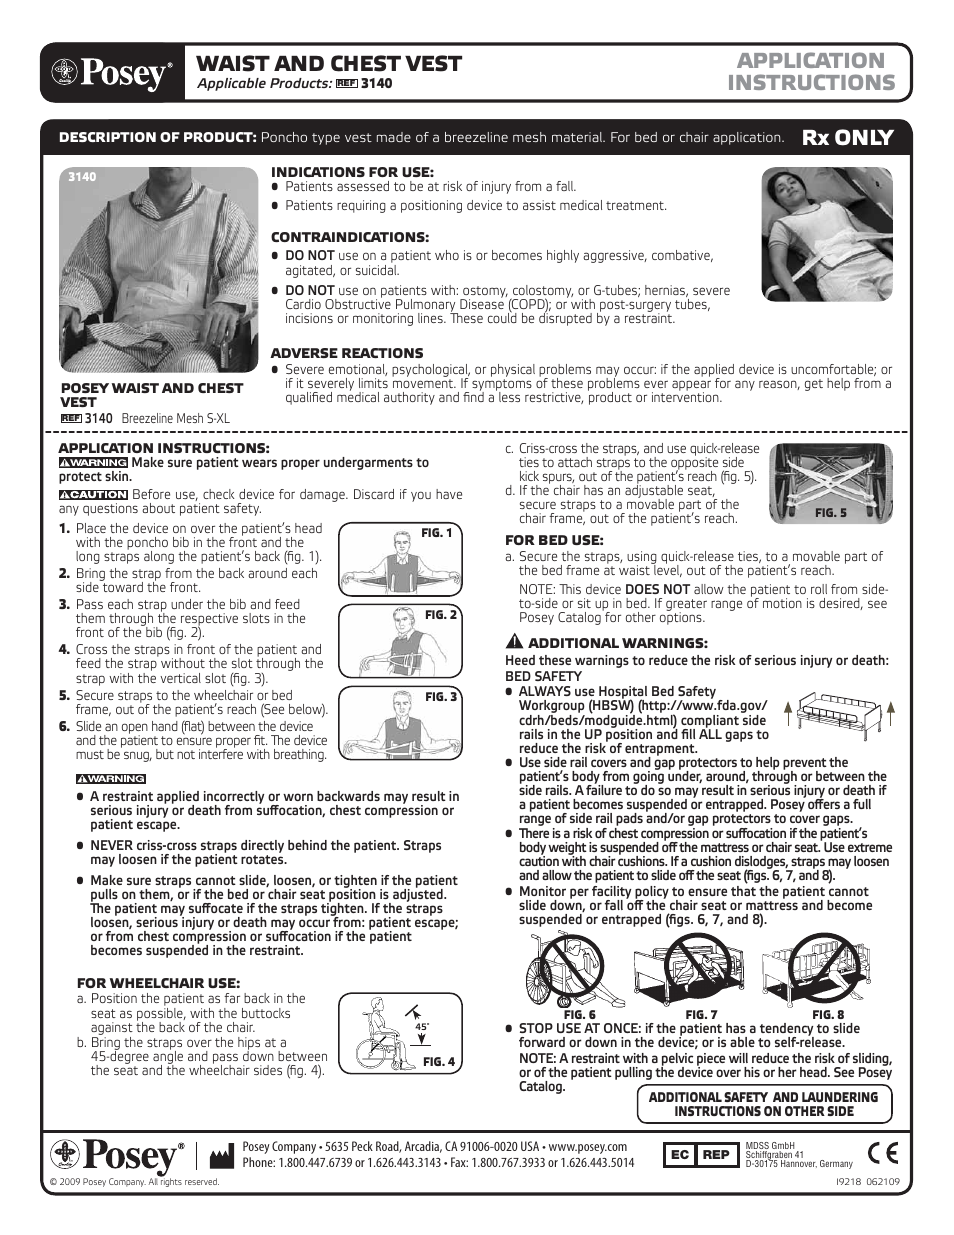 Posey Waist And Chest Vest User Manual 2 Pages